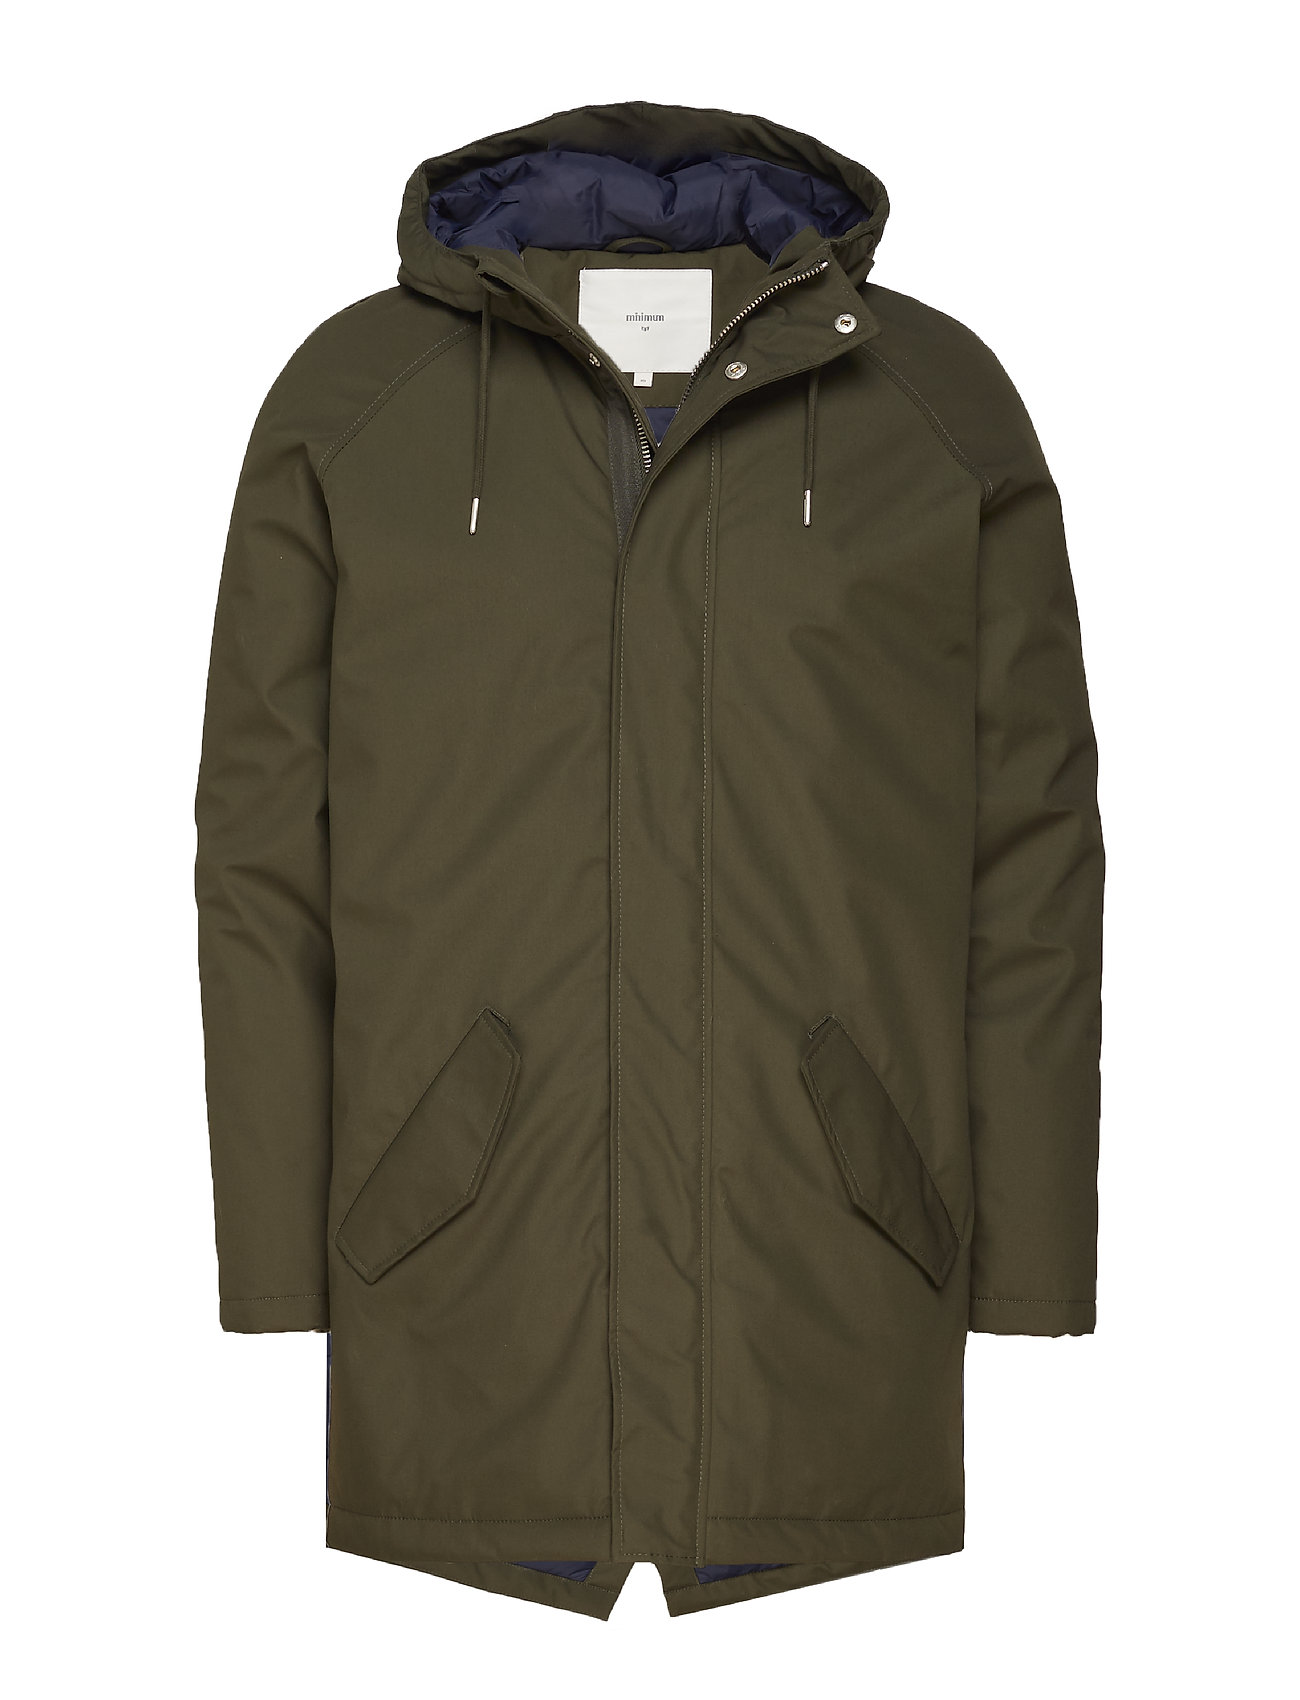 MINIMUM Wexford 3.0 Parka Jacke Grün MINIMUM